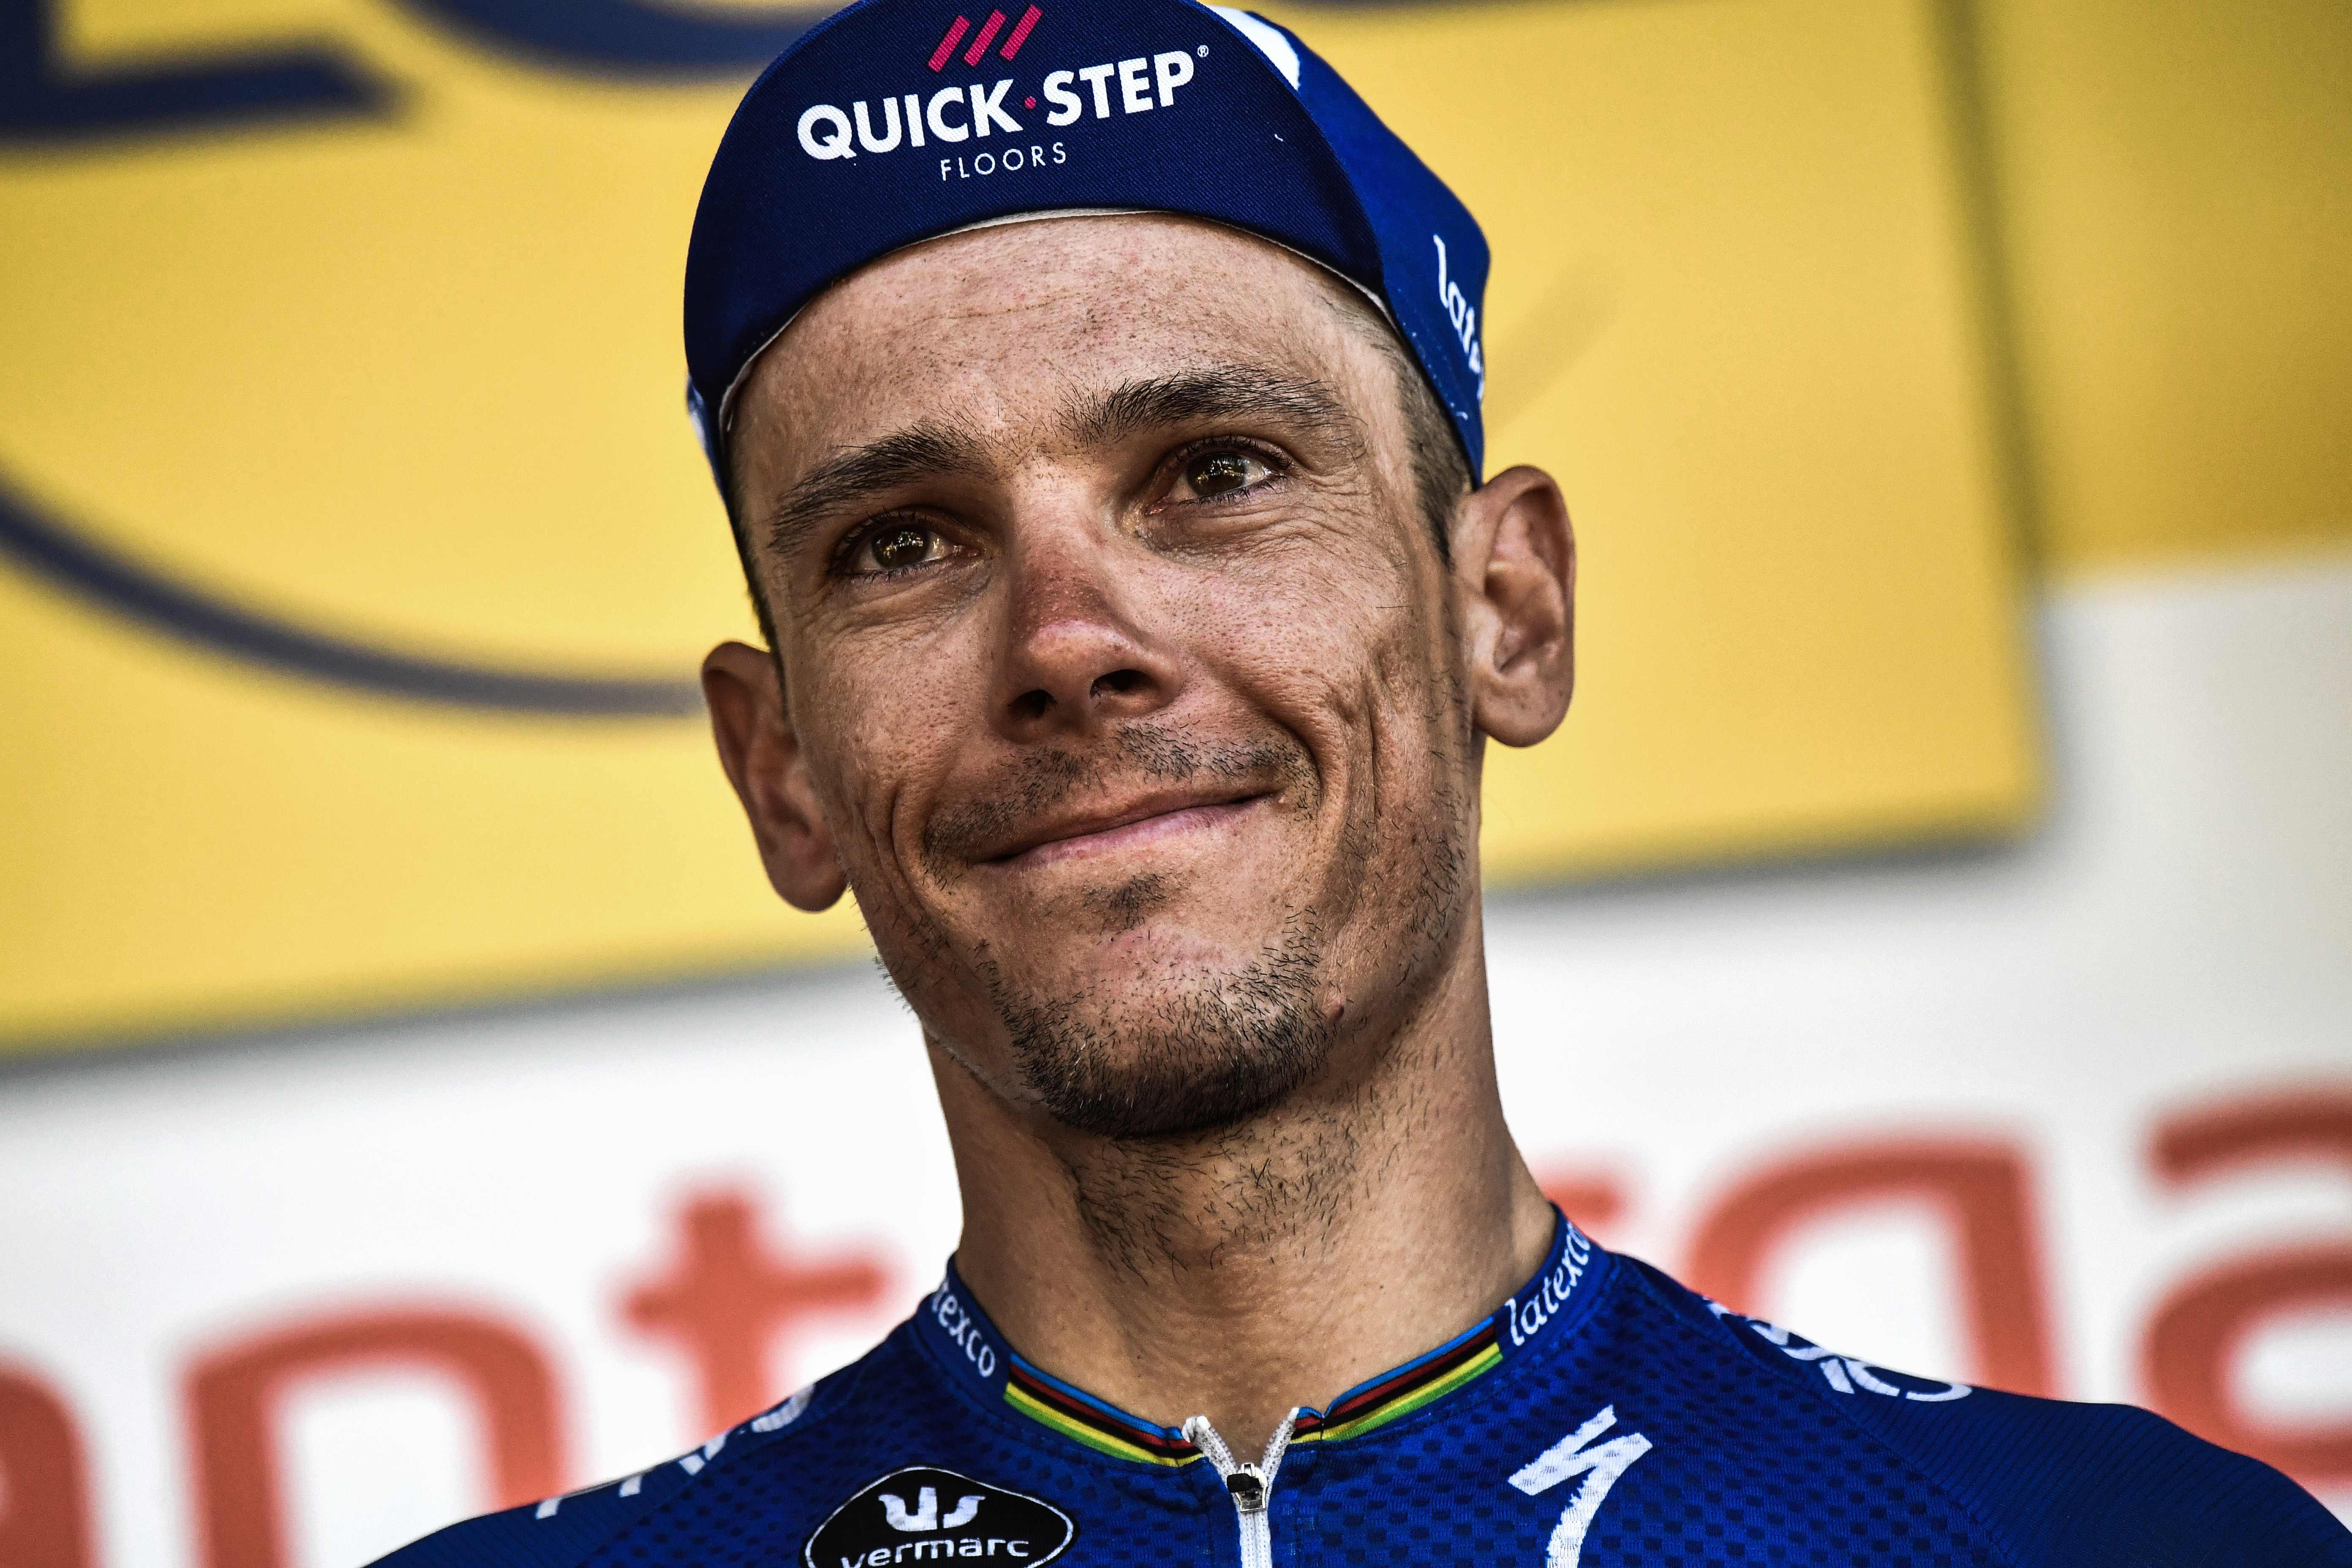 The smash-up failed to shake the spirit of smiling Belgian Philippe Gilbert